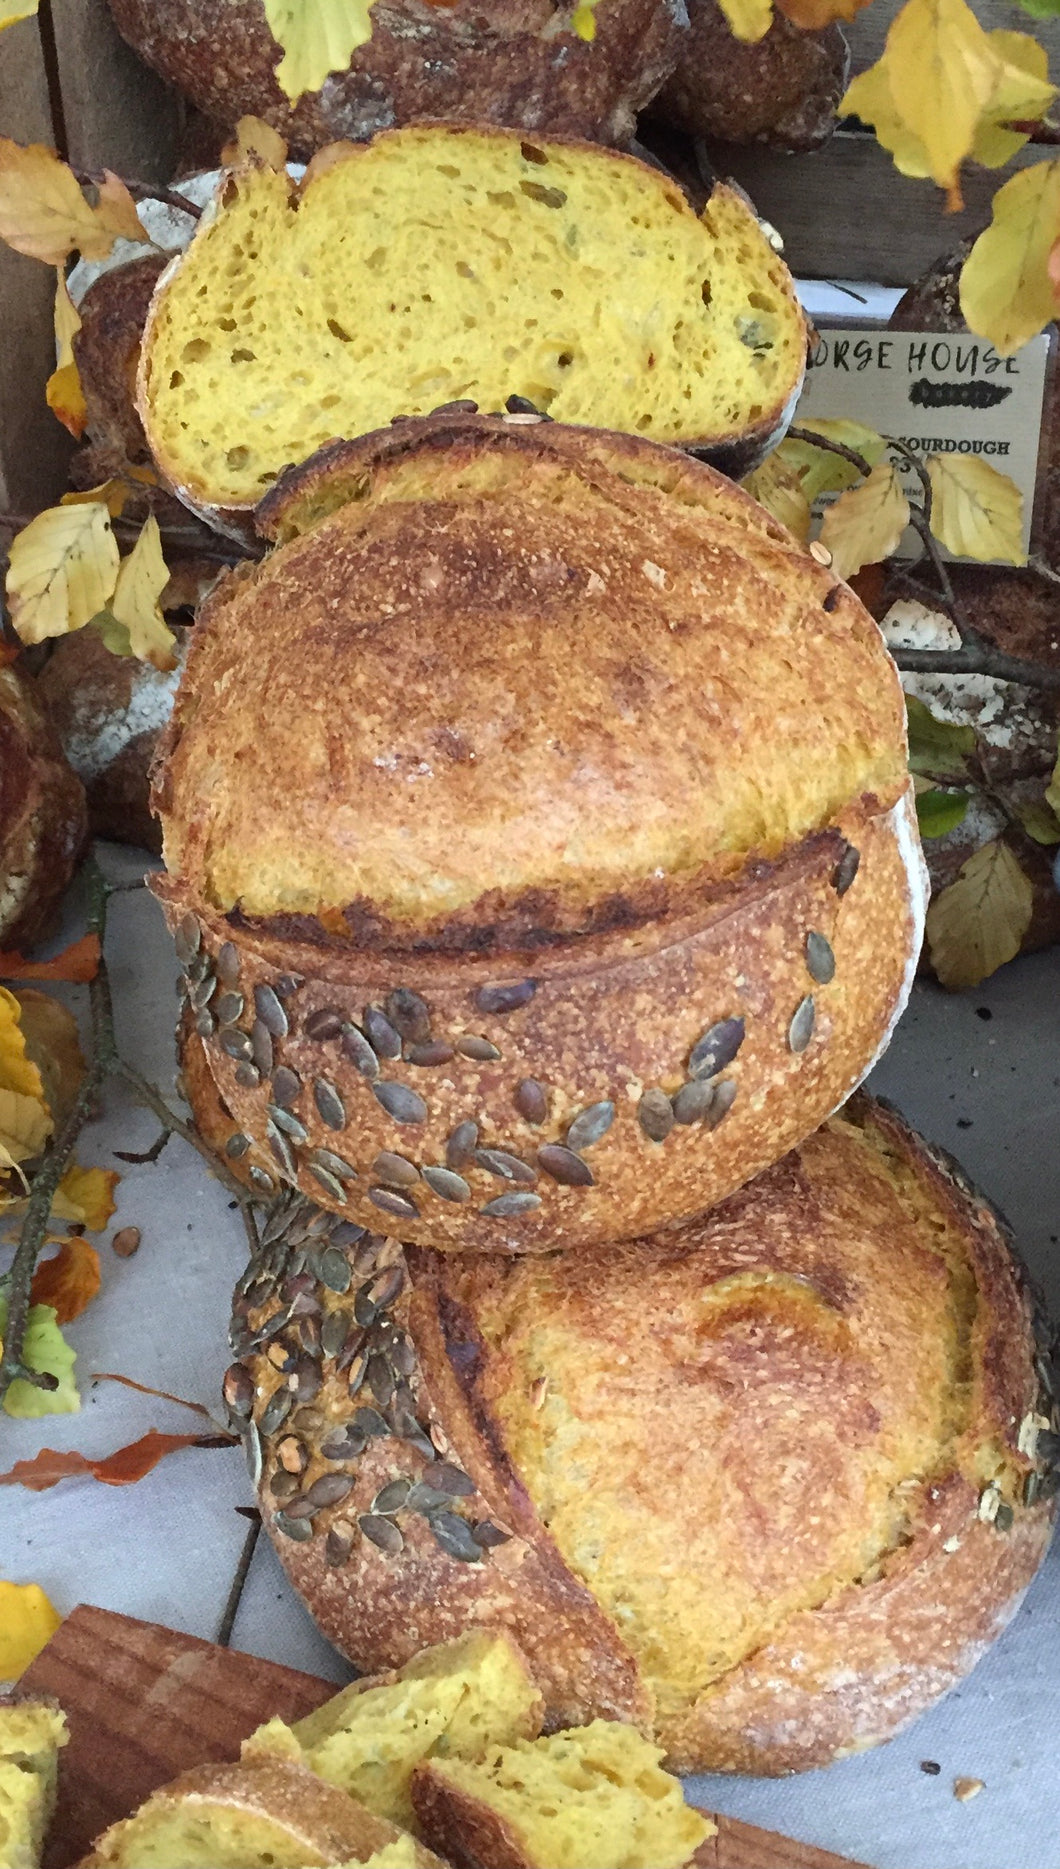 Loaf of the month: Pumpkin sourdough